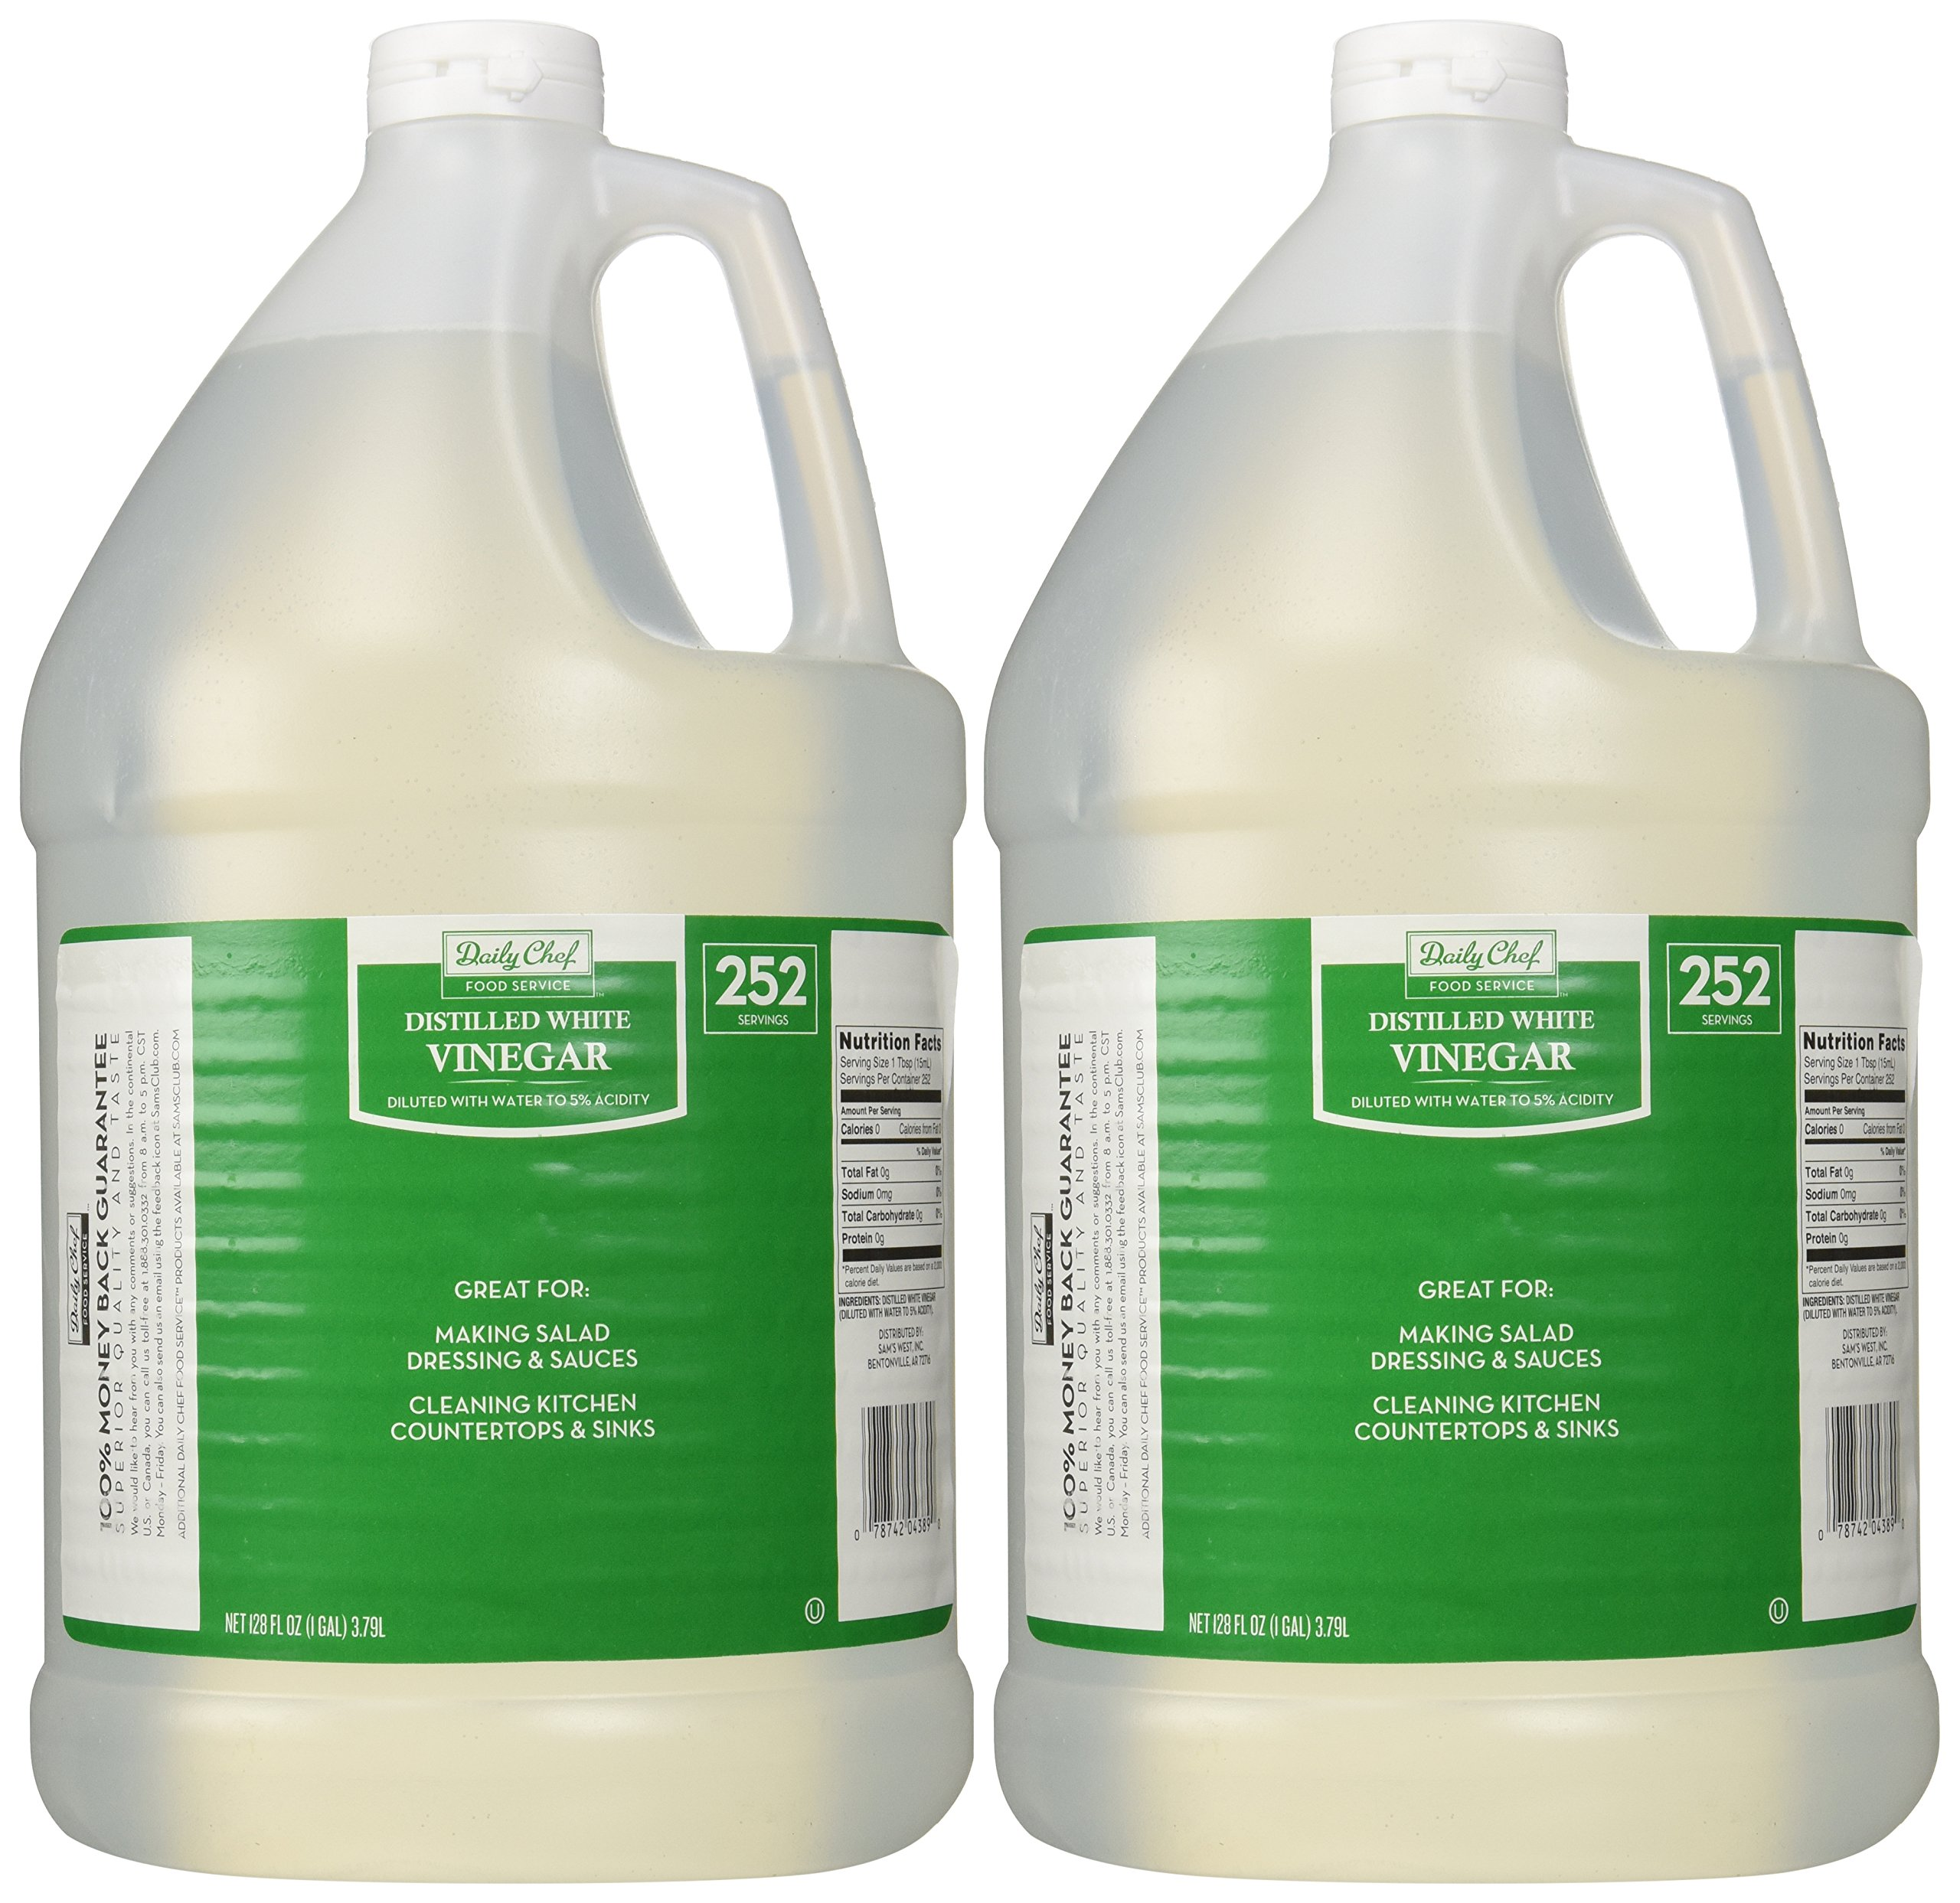 Daily Chef Distilled White Vinegar 2/1 gallon jugs (2 PACK)